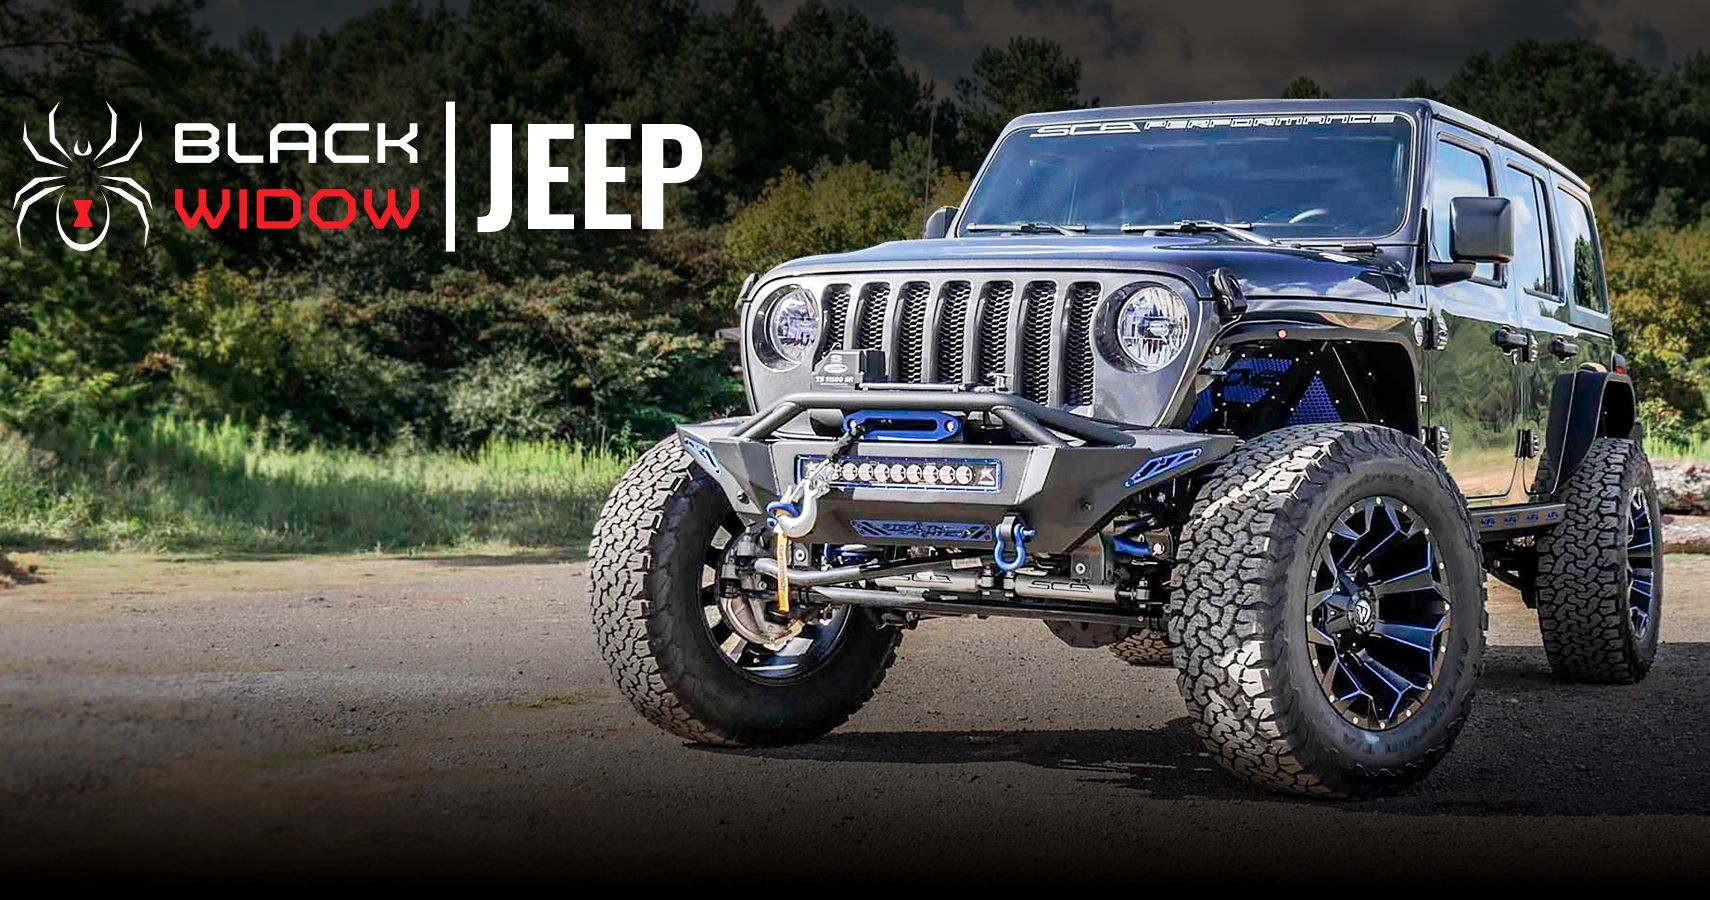 SCA Performance Releases All-New 2020 Jeep JL Black Widow